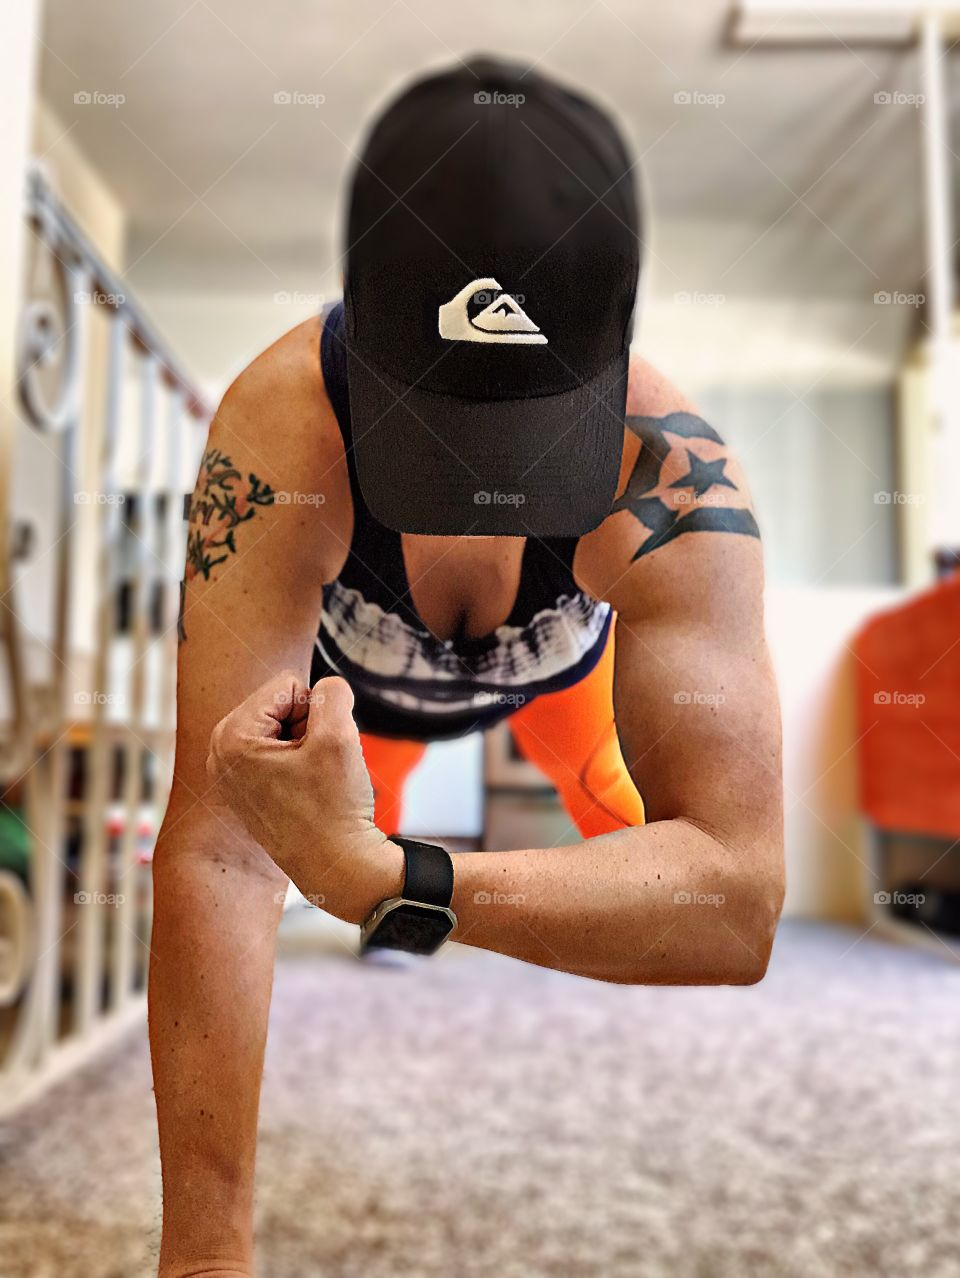 Push Up, Strong Woman, Girl Working Out, Strength, Girl Power, Fitness Photography, Woman Working Out, One Handed Push Ups